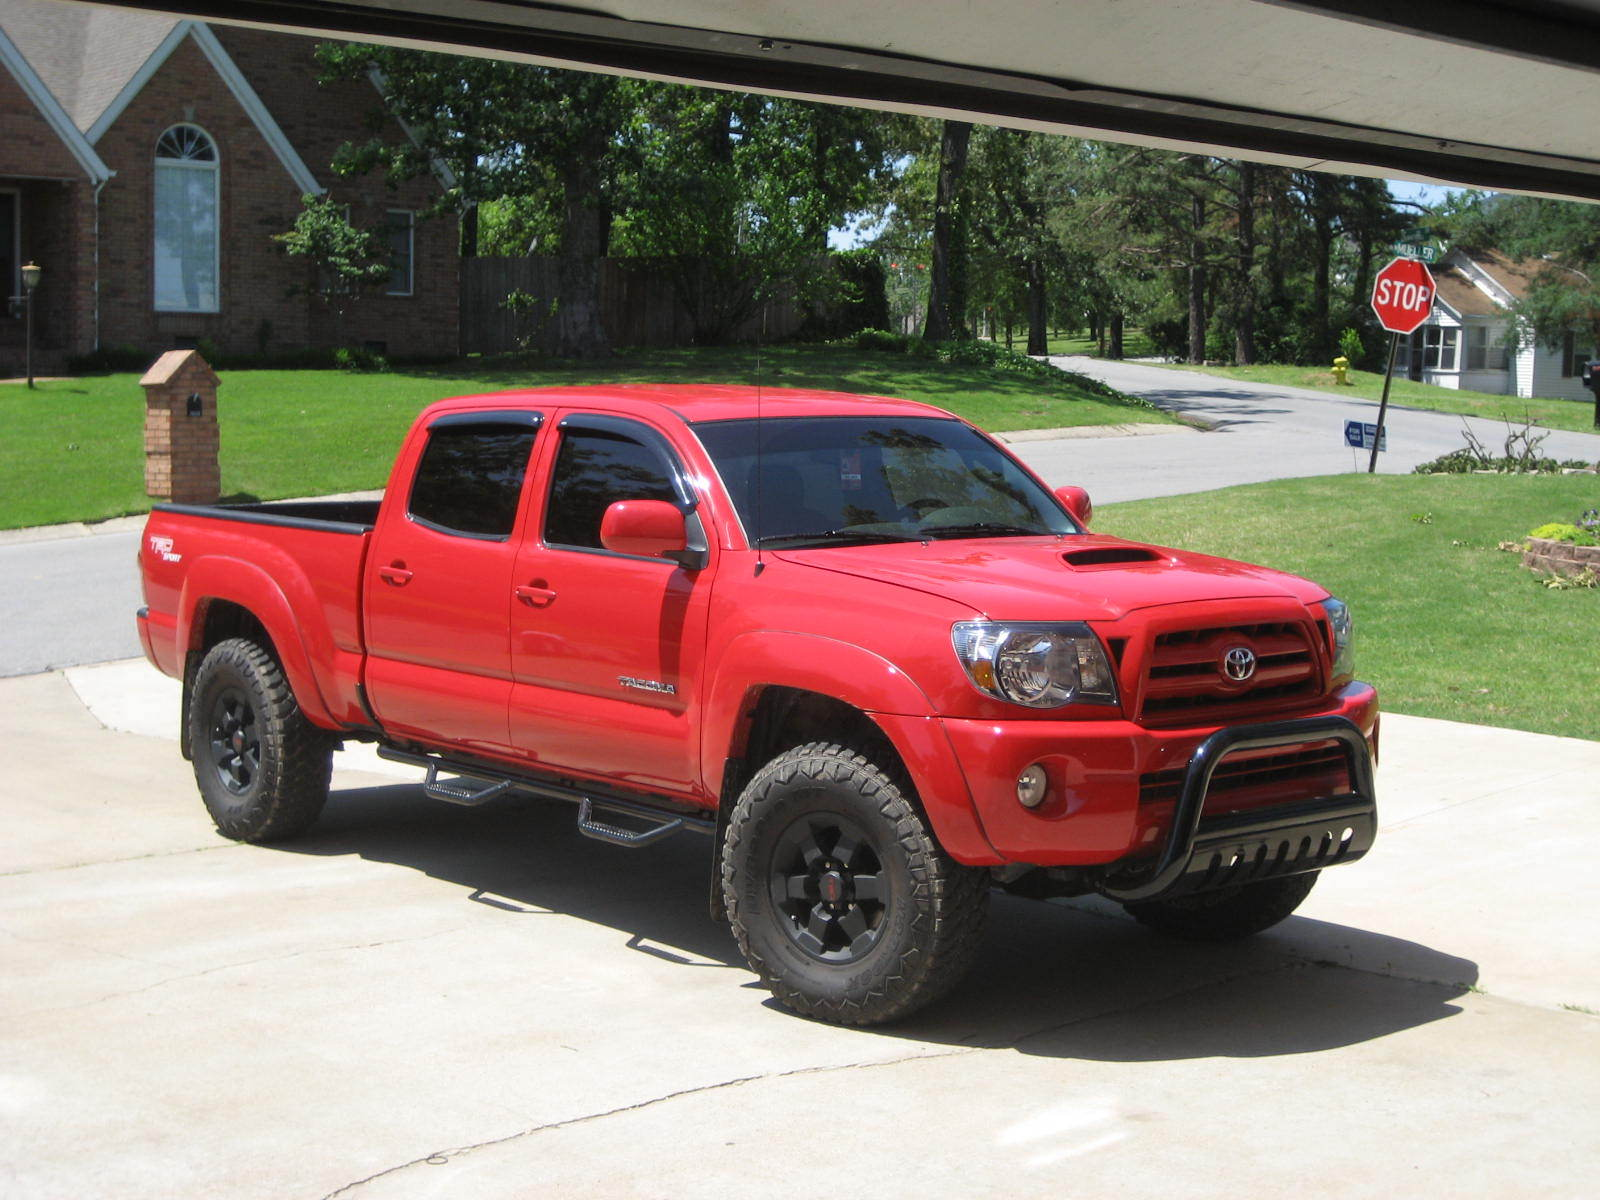 Honeycombs07 2006 Toyota Tacoma Xtra Cab Specs, Photos ...